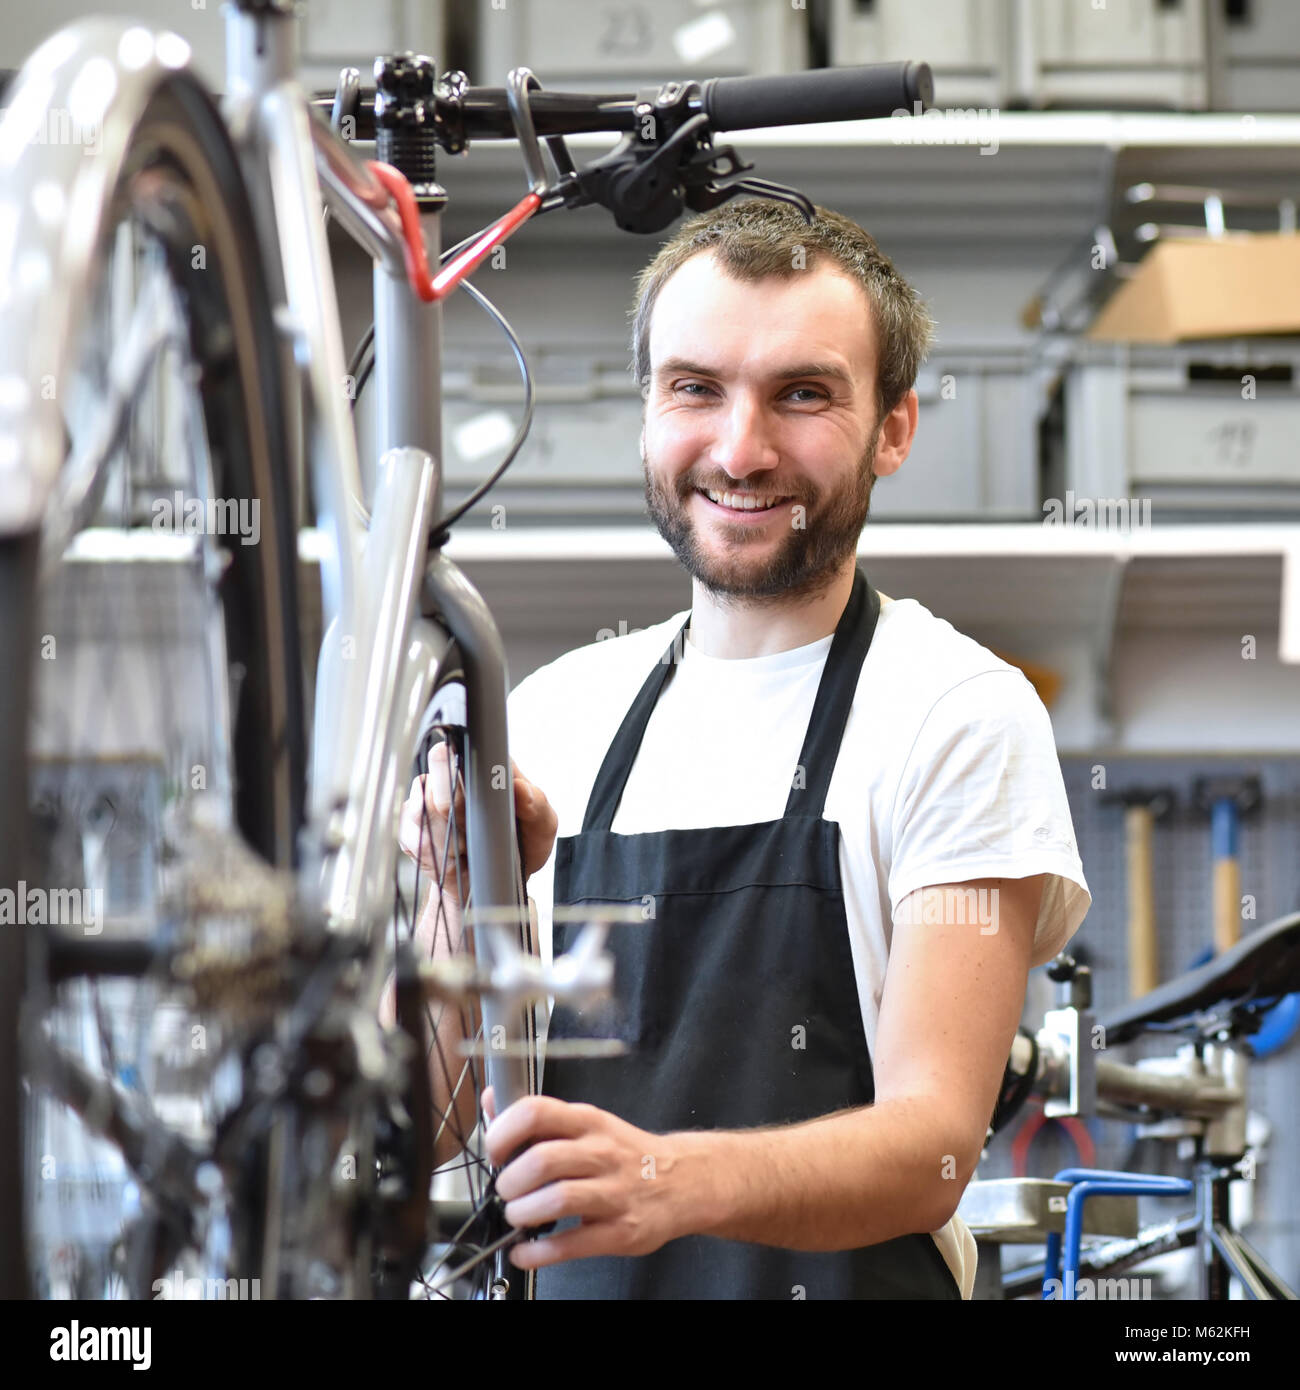 portrait of a friendly and competent bicycle mechanic in a workshop repairs a bike - Stock Image